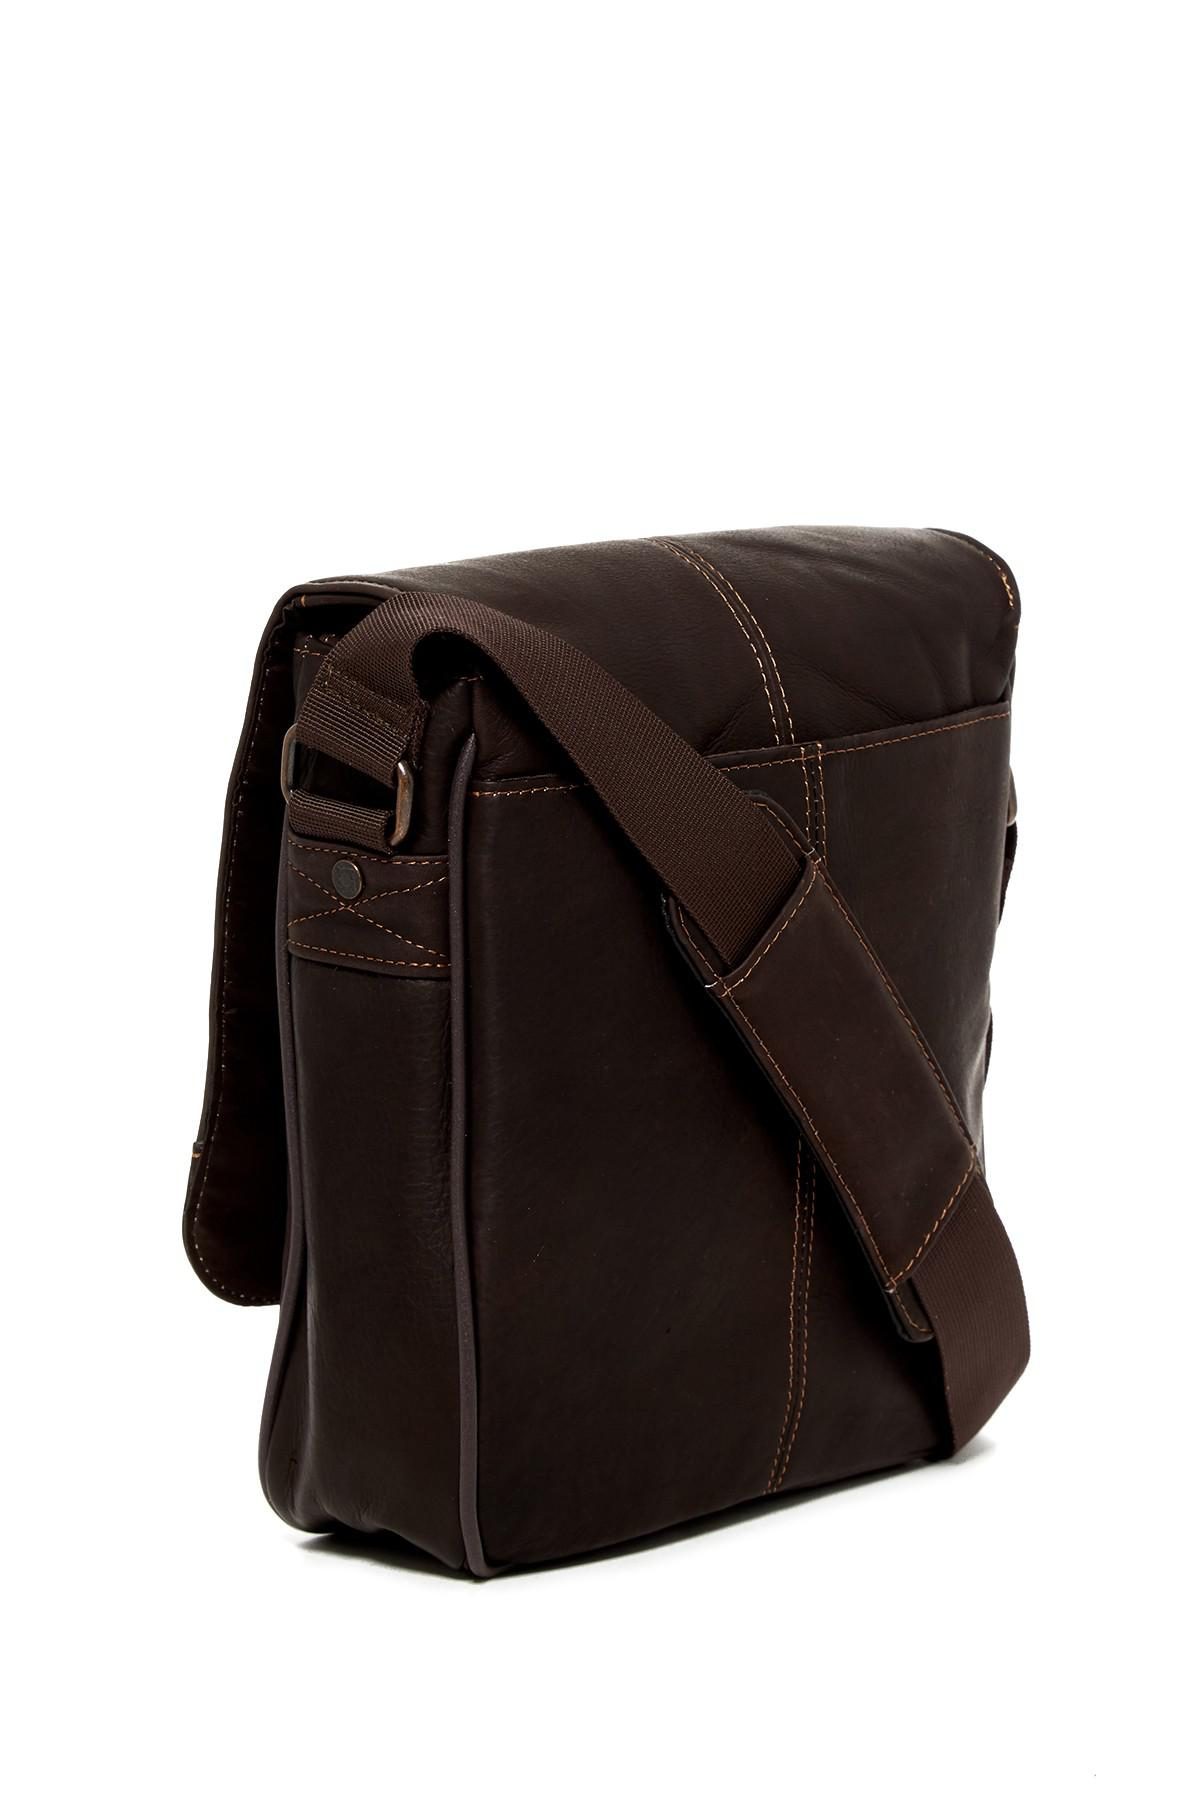 d4ae192a2c Lyst - Kenneth Cole Bag-street Boy Leather Crossbody in Brown for Men